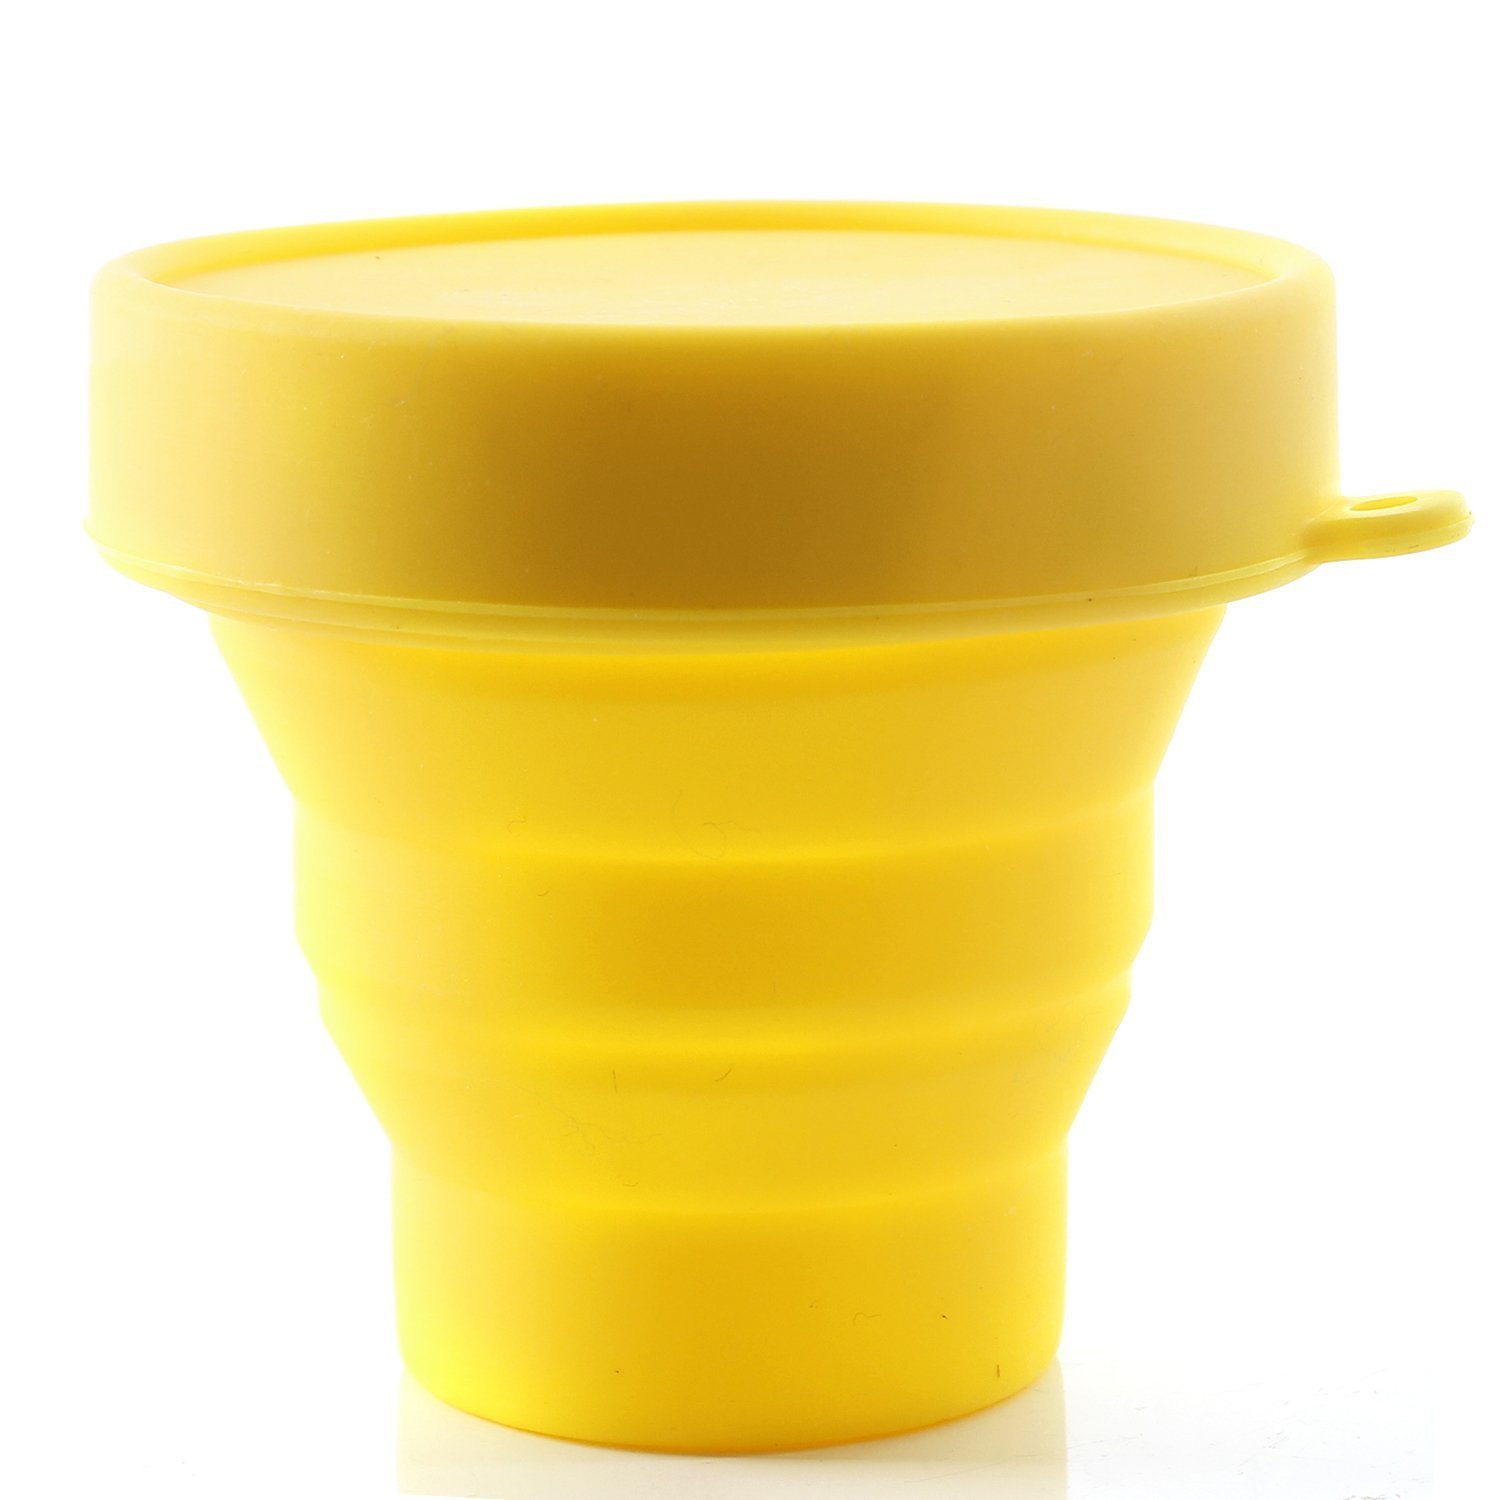 Collapsible Silicone Cup Foldable Sterilizing Cup for Menstrual Cup for Moon Cup